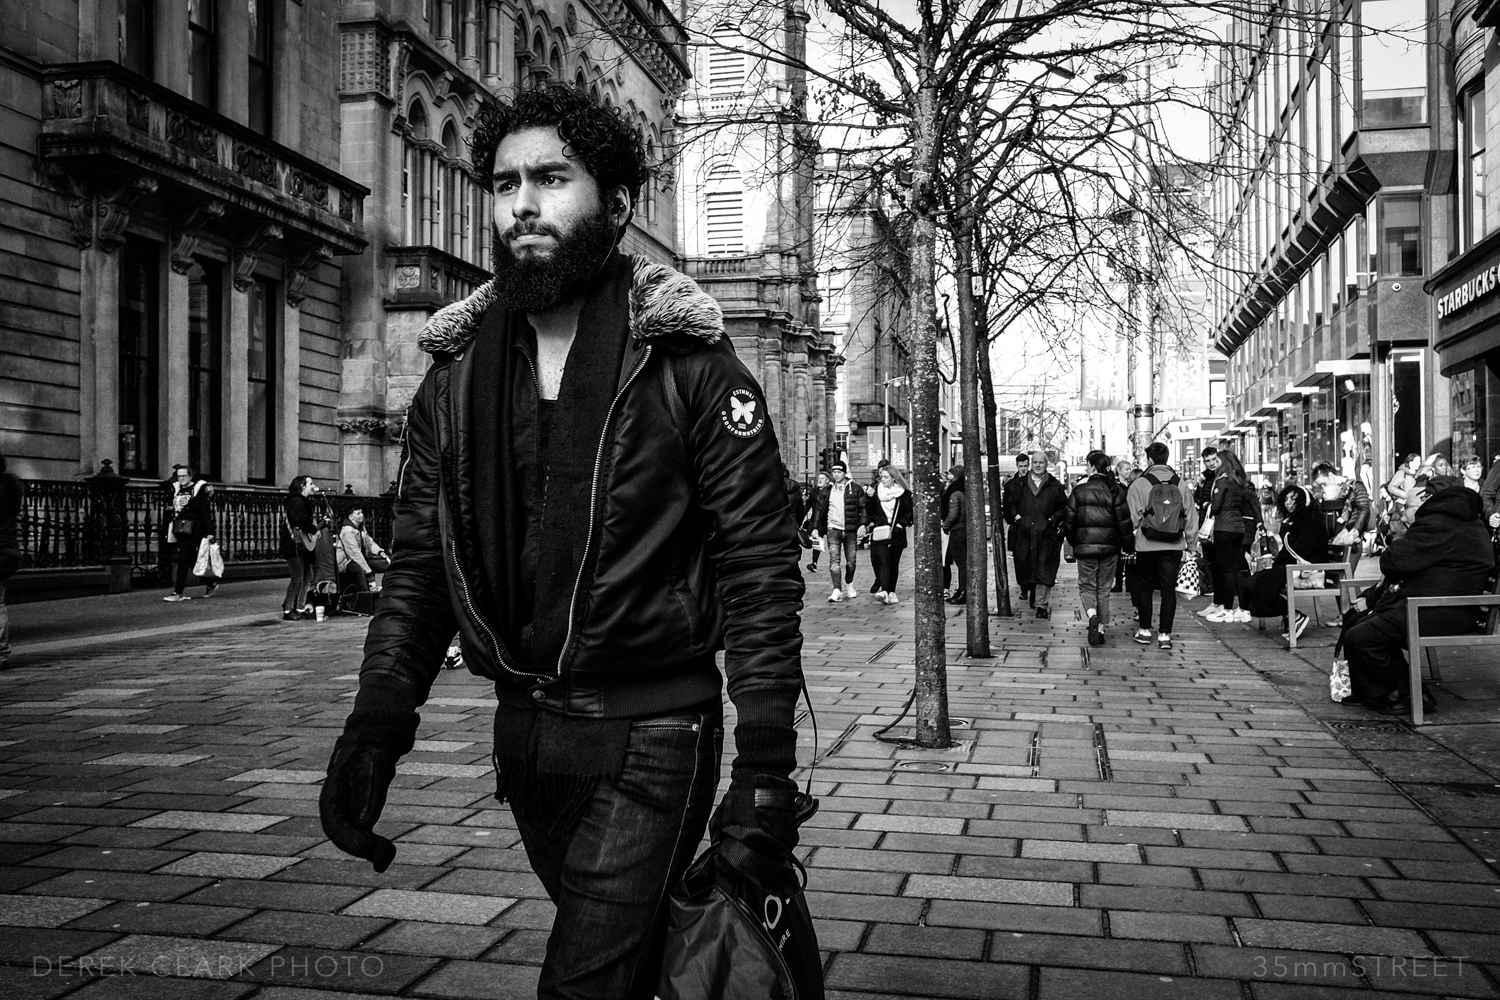 048_35mmStreet-Glasgow-Scotland-Feb-2019.jpg